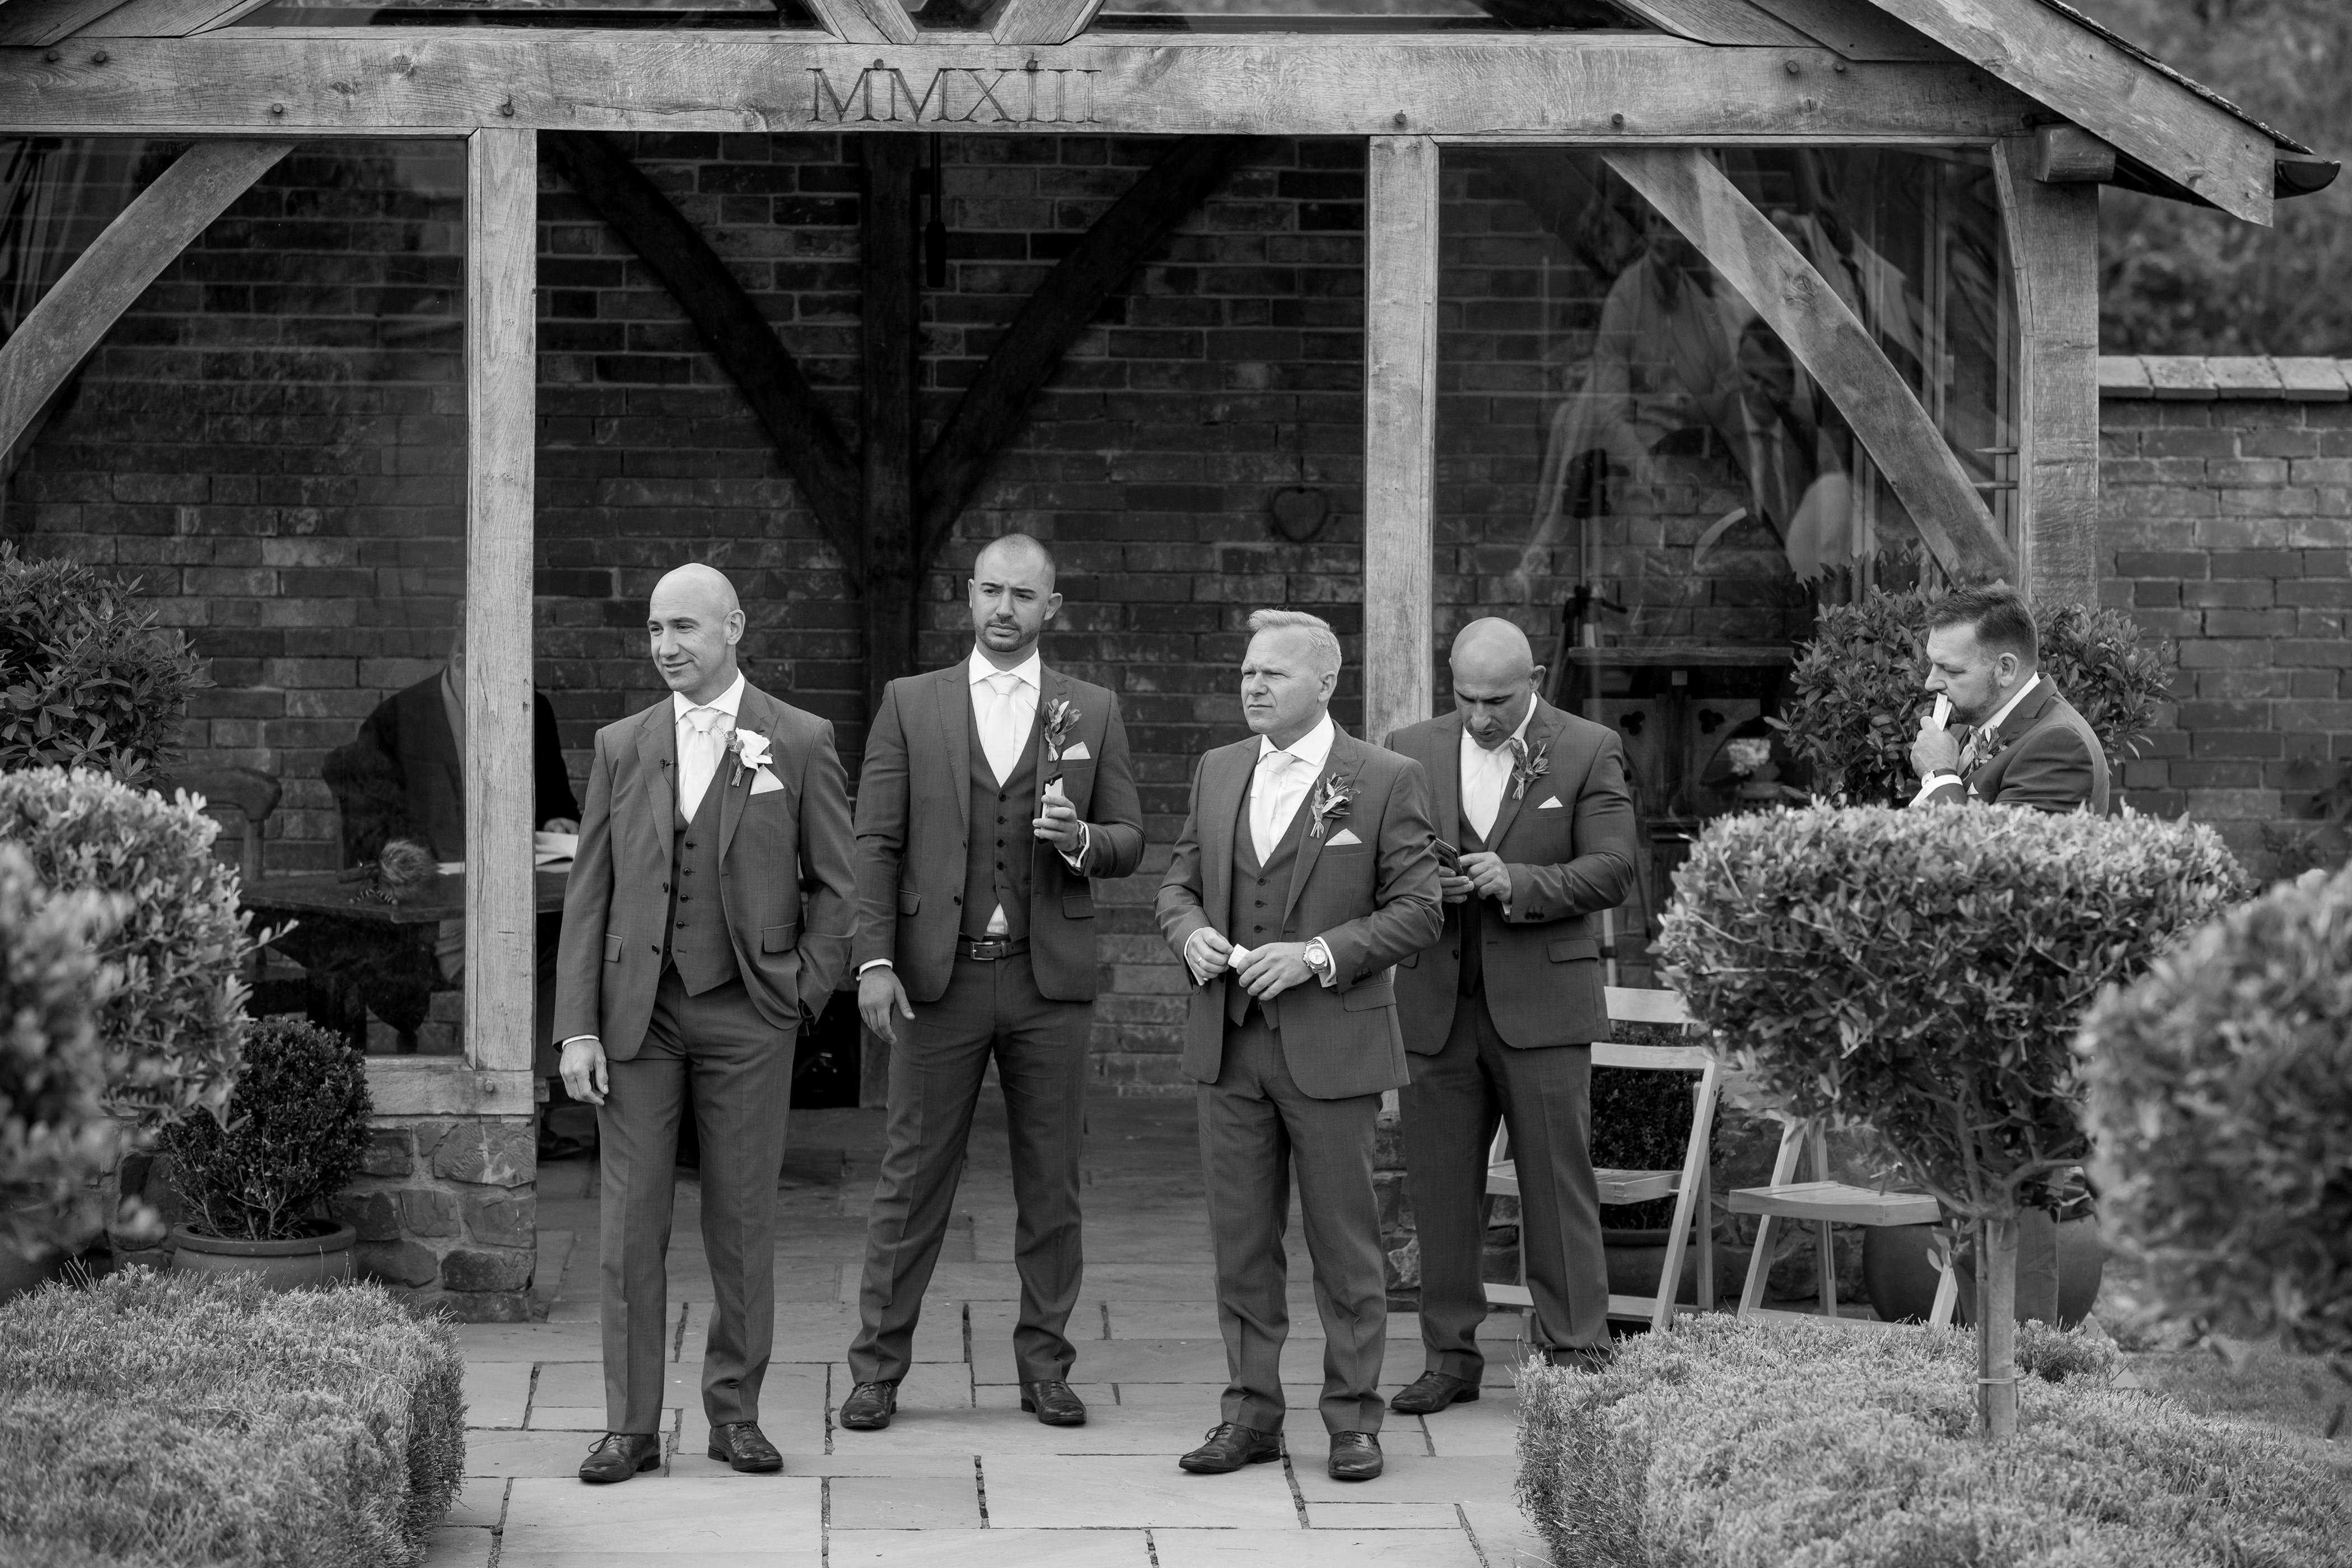 Grooms men await arrival of bride at the arbor